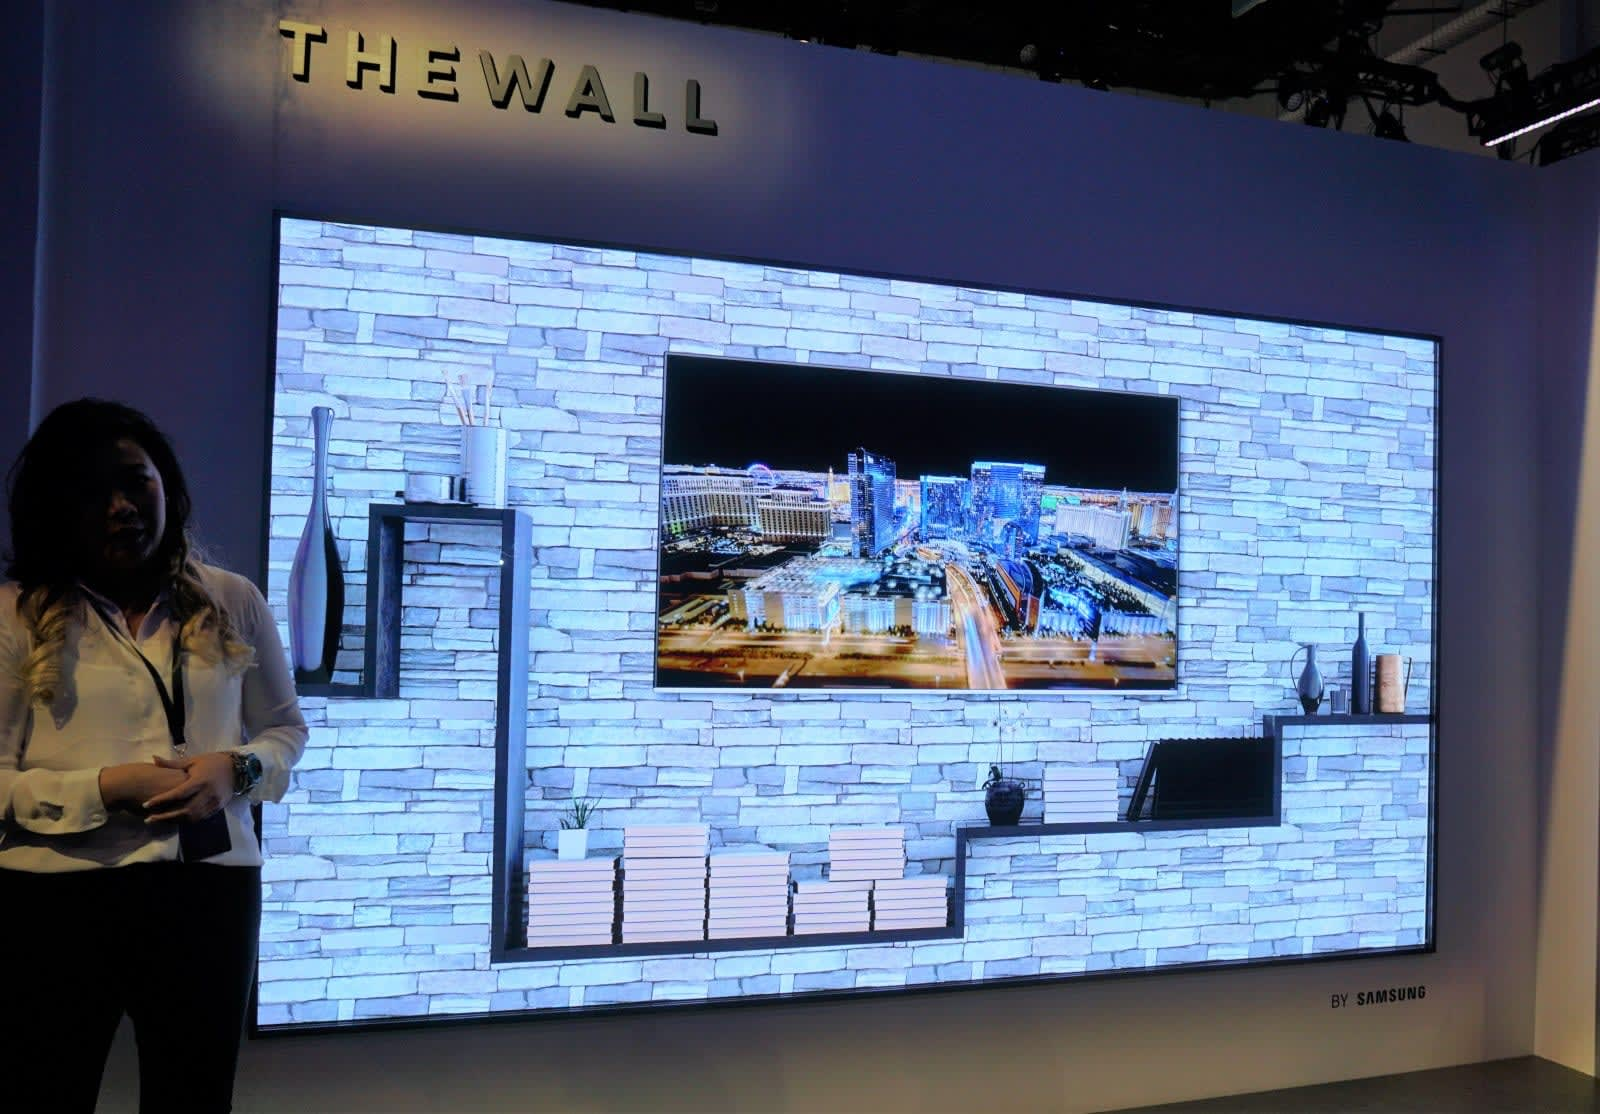 Samsung's massive 'The Wall' TV will be available in August